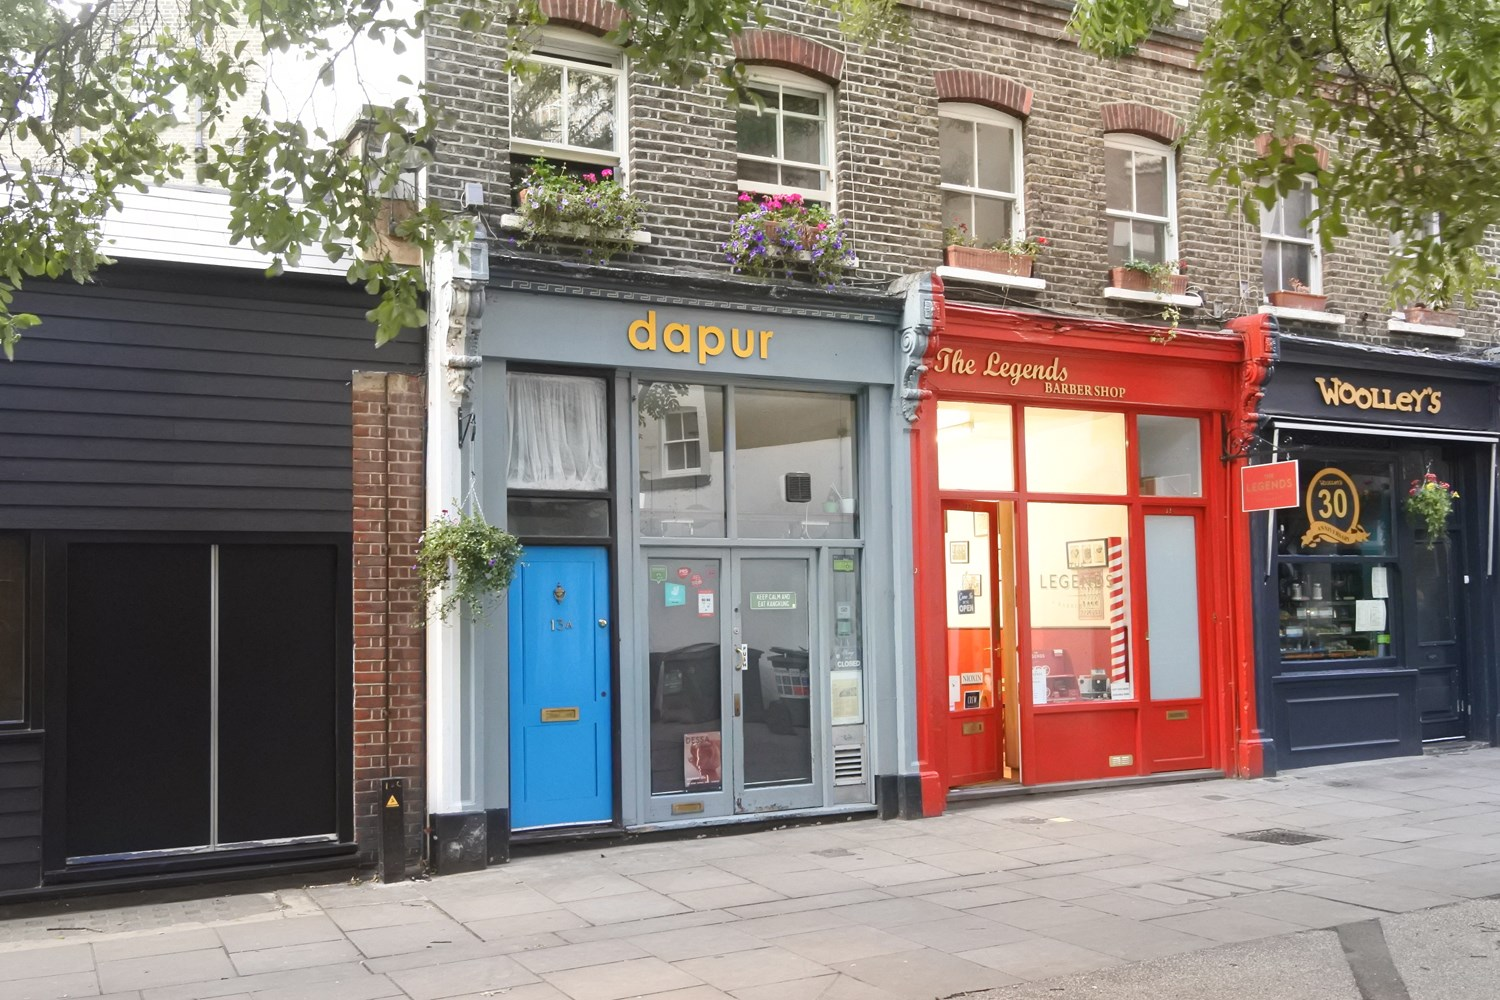 13 Lambs Conduit Street WC1R 4RH Holborn Cafe For Rent External1